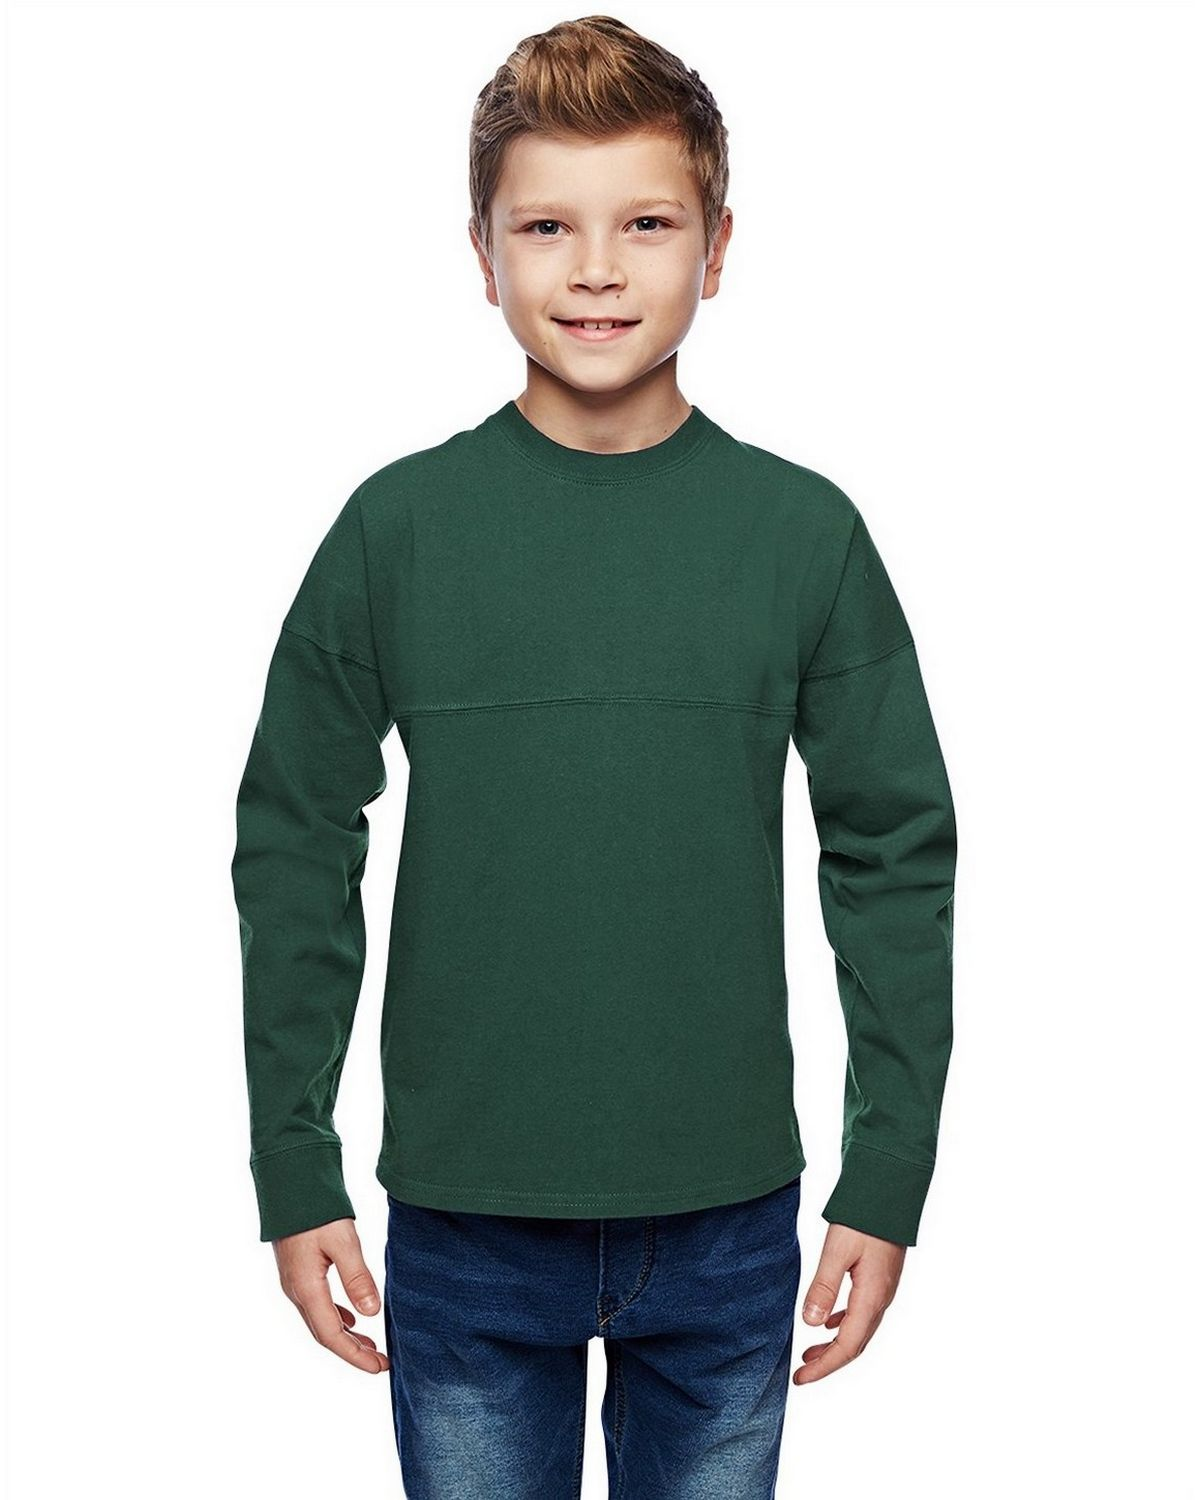 J America JA8219 Youth Game Day Jersey - Forest Green - S from J America